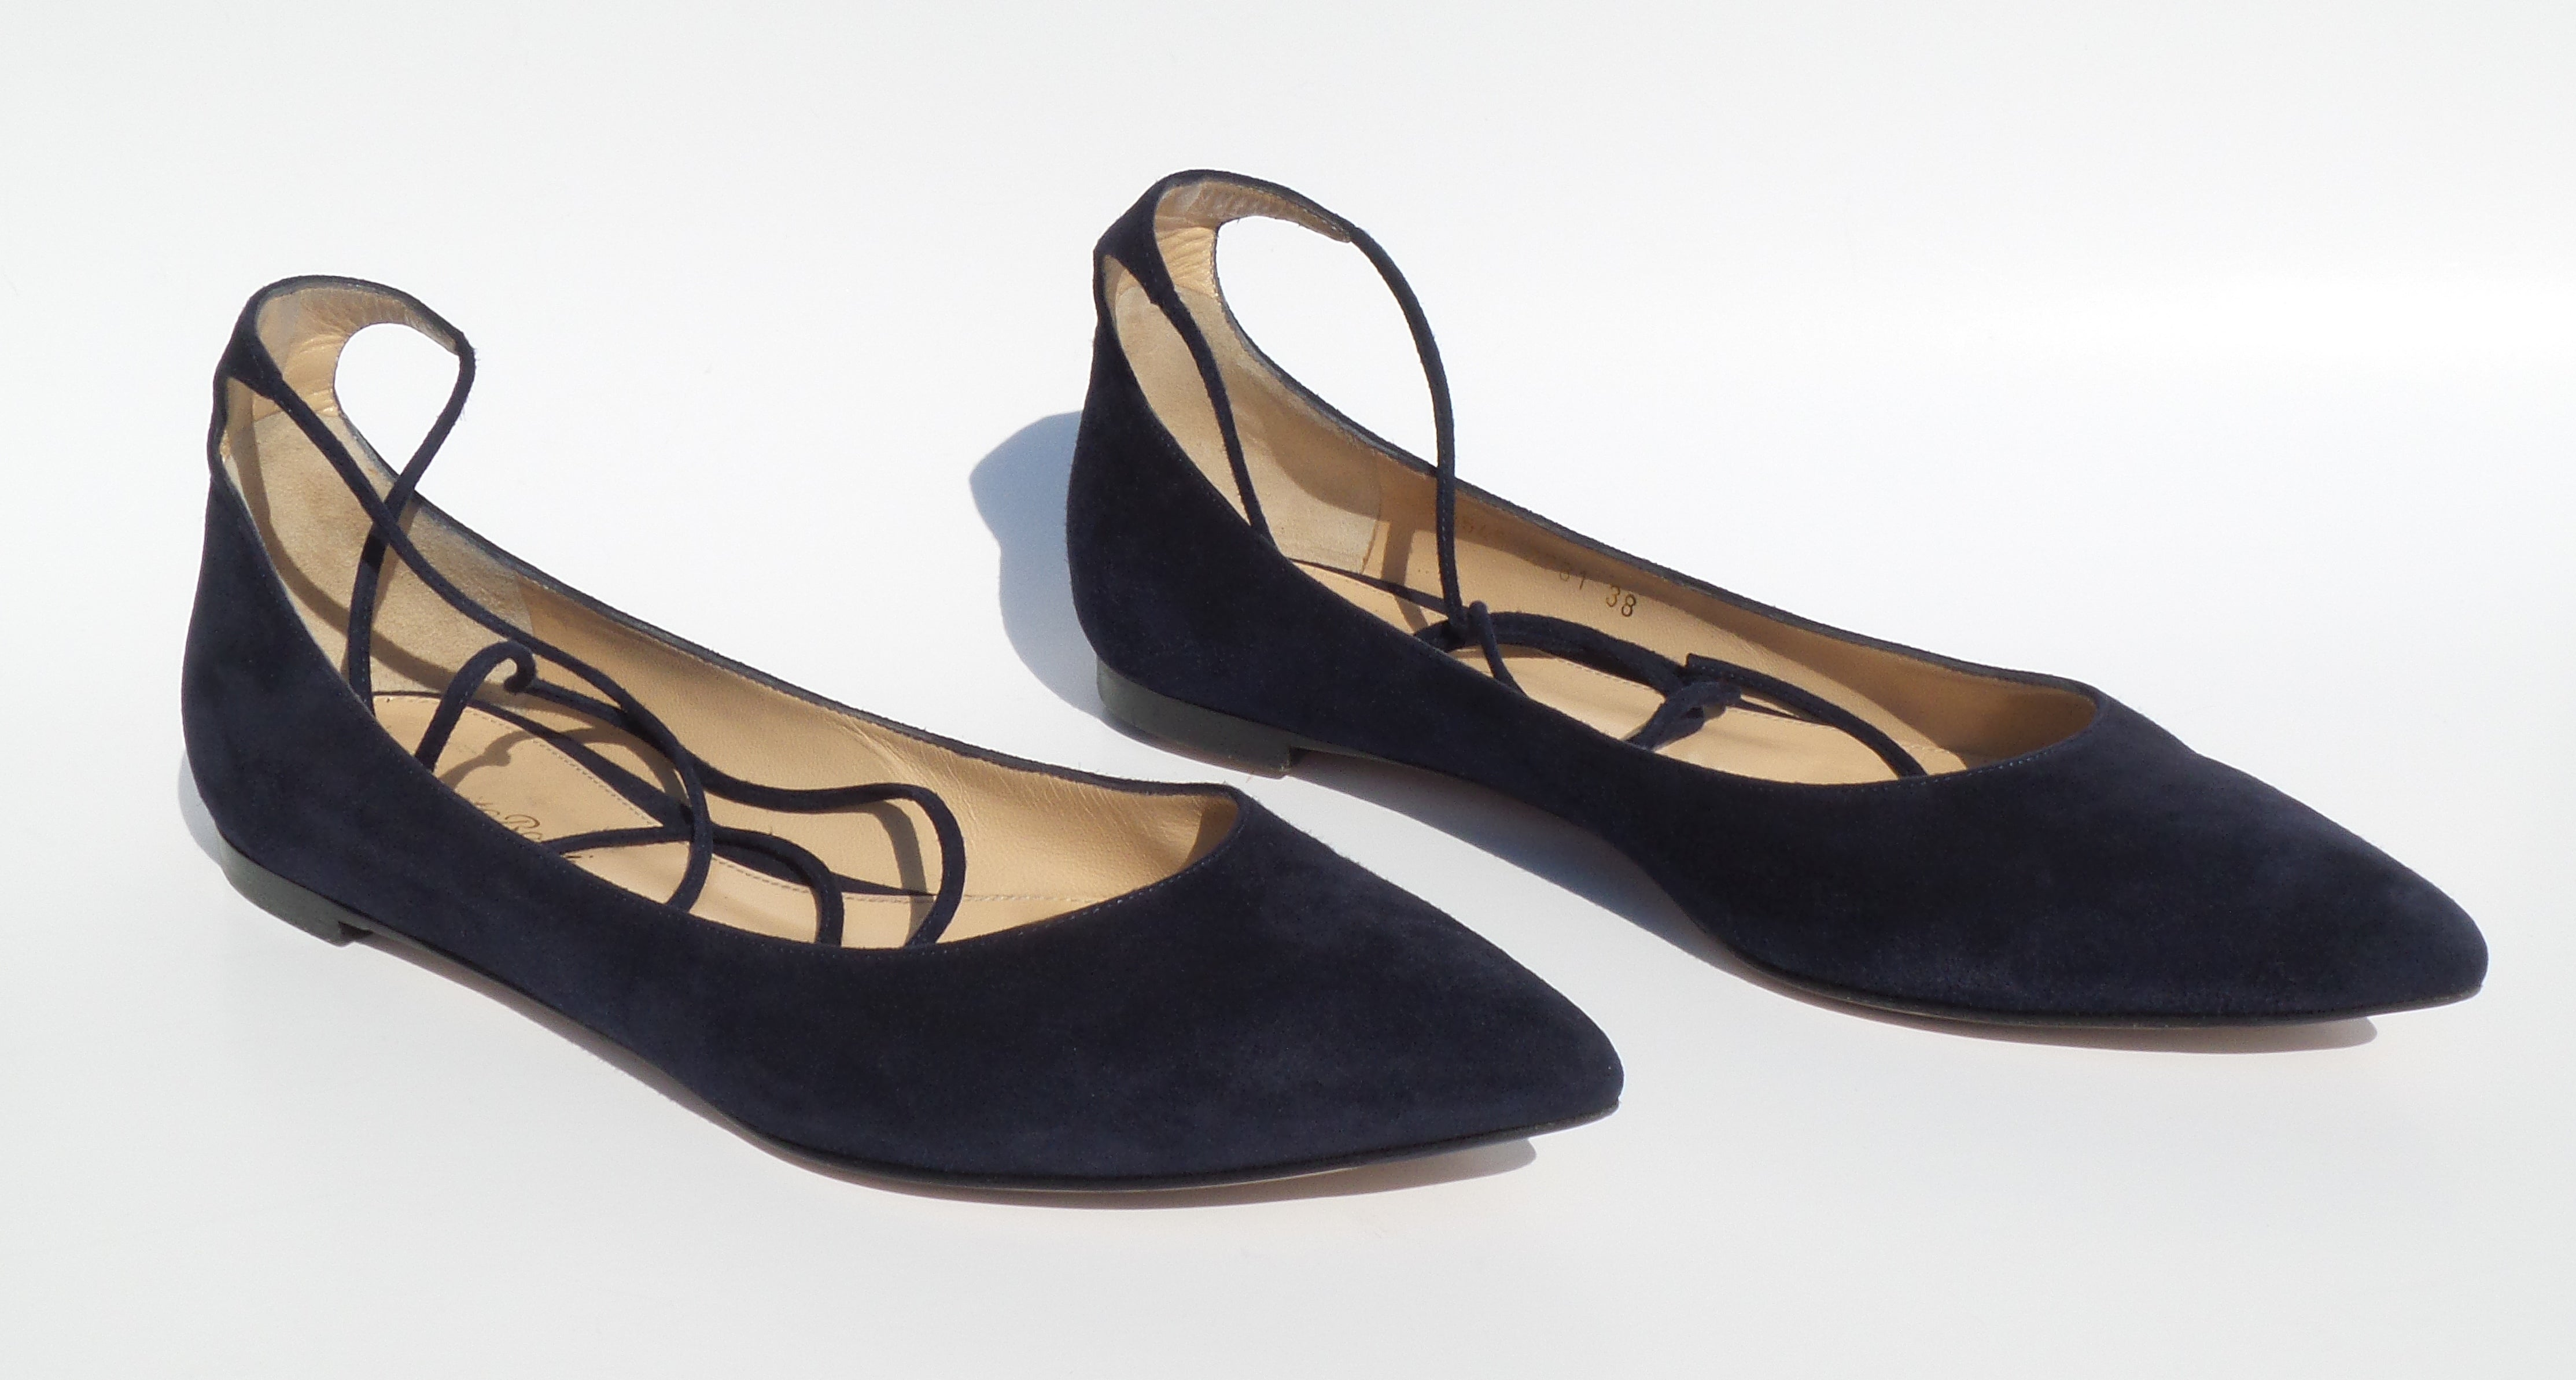 GIANVITO ROSSI Navy Blue Suede Pointed Toe Wrap Ankle Tie Strap Ballet Flats 38